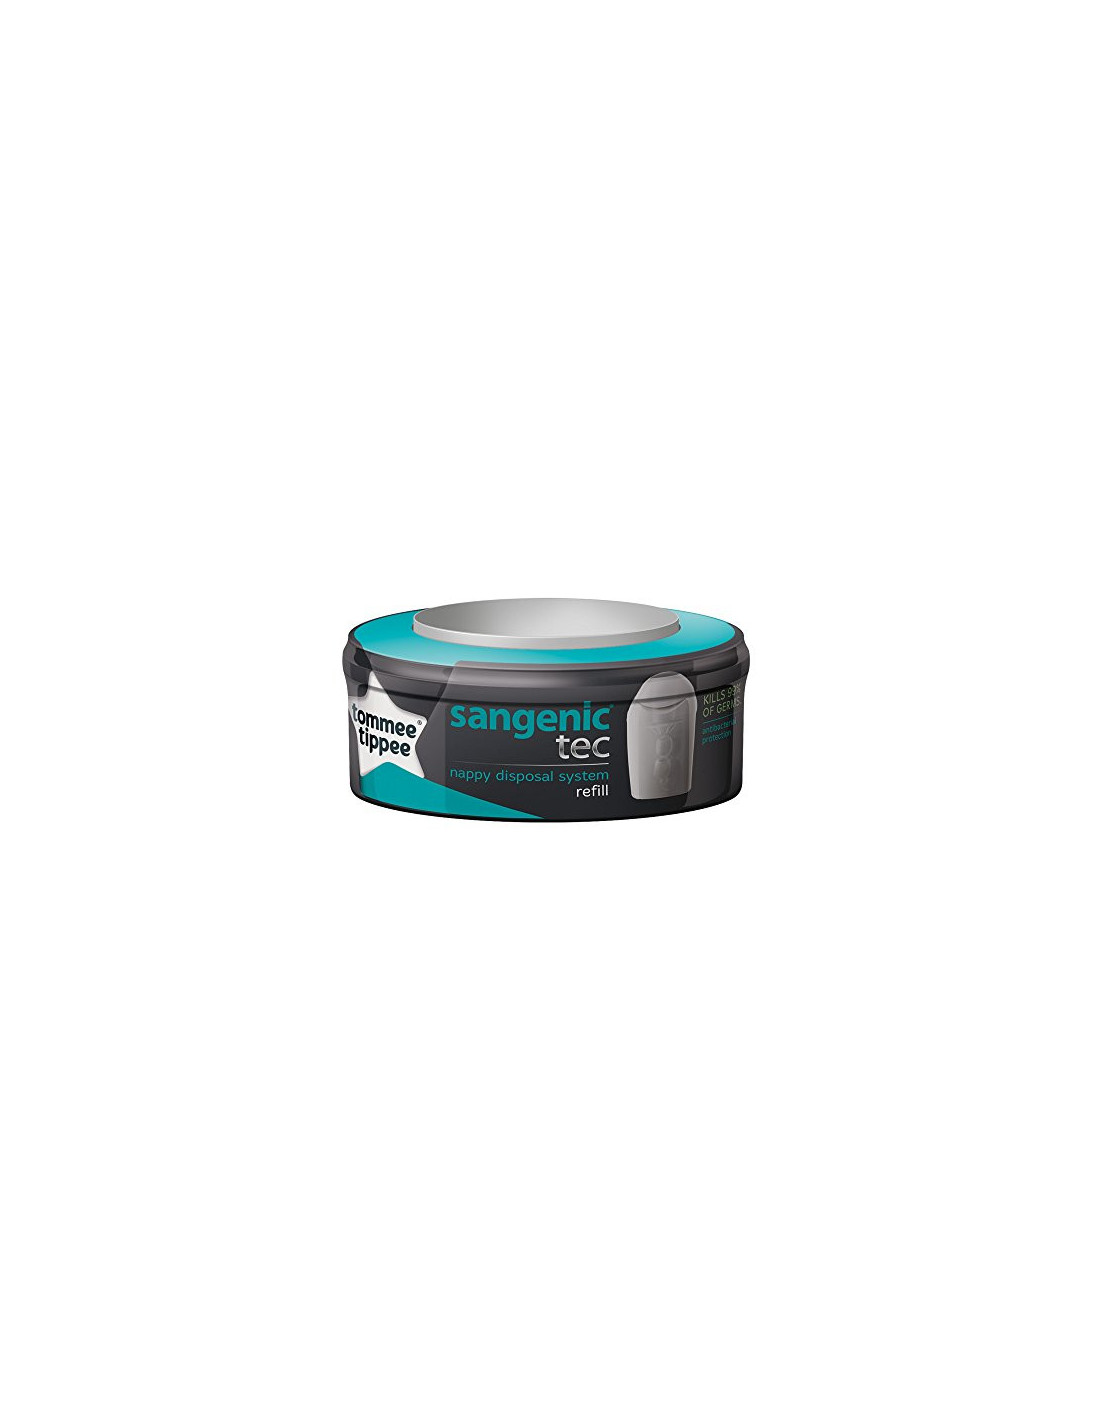 nappy disposal cassette 1 unit sangenic tommee tippee. Black Bedroom Furniture Sets. Home Design Ideas